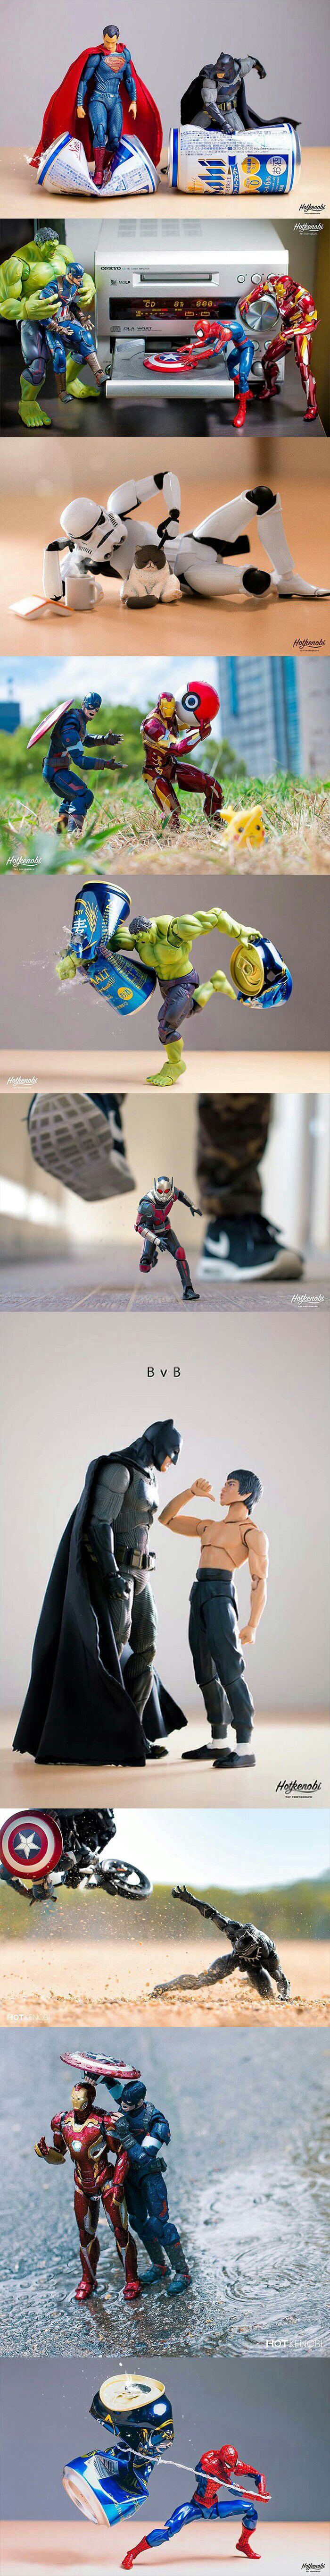 Great use of action figures